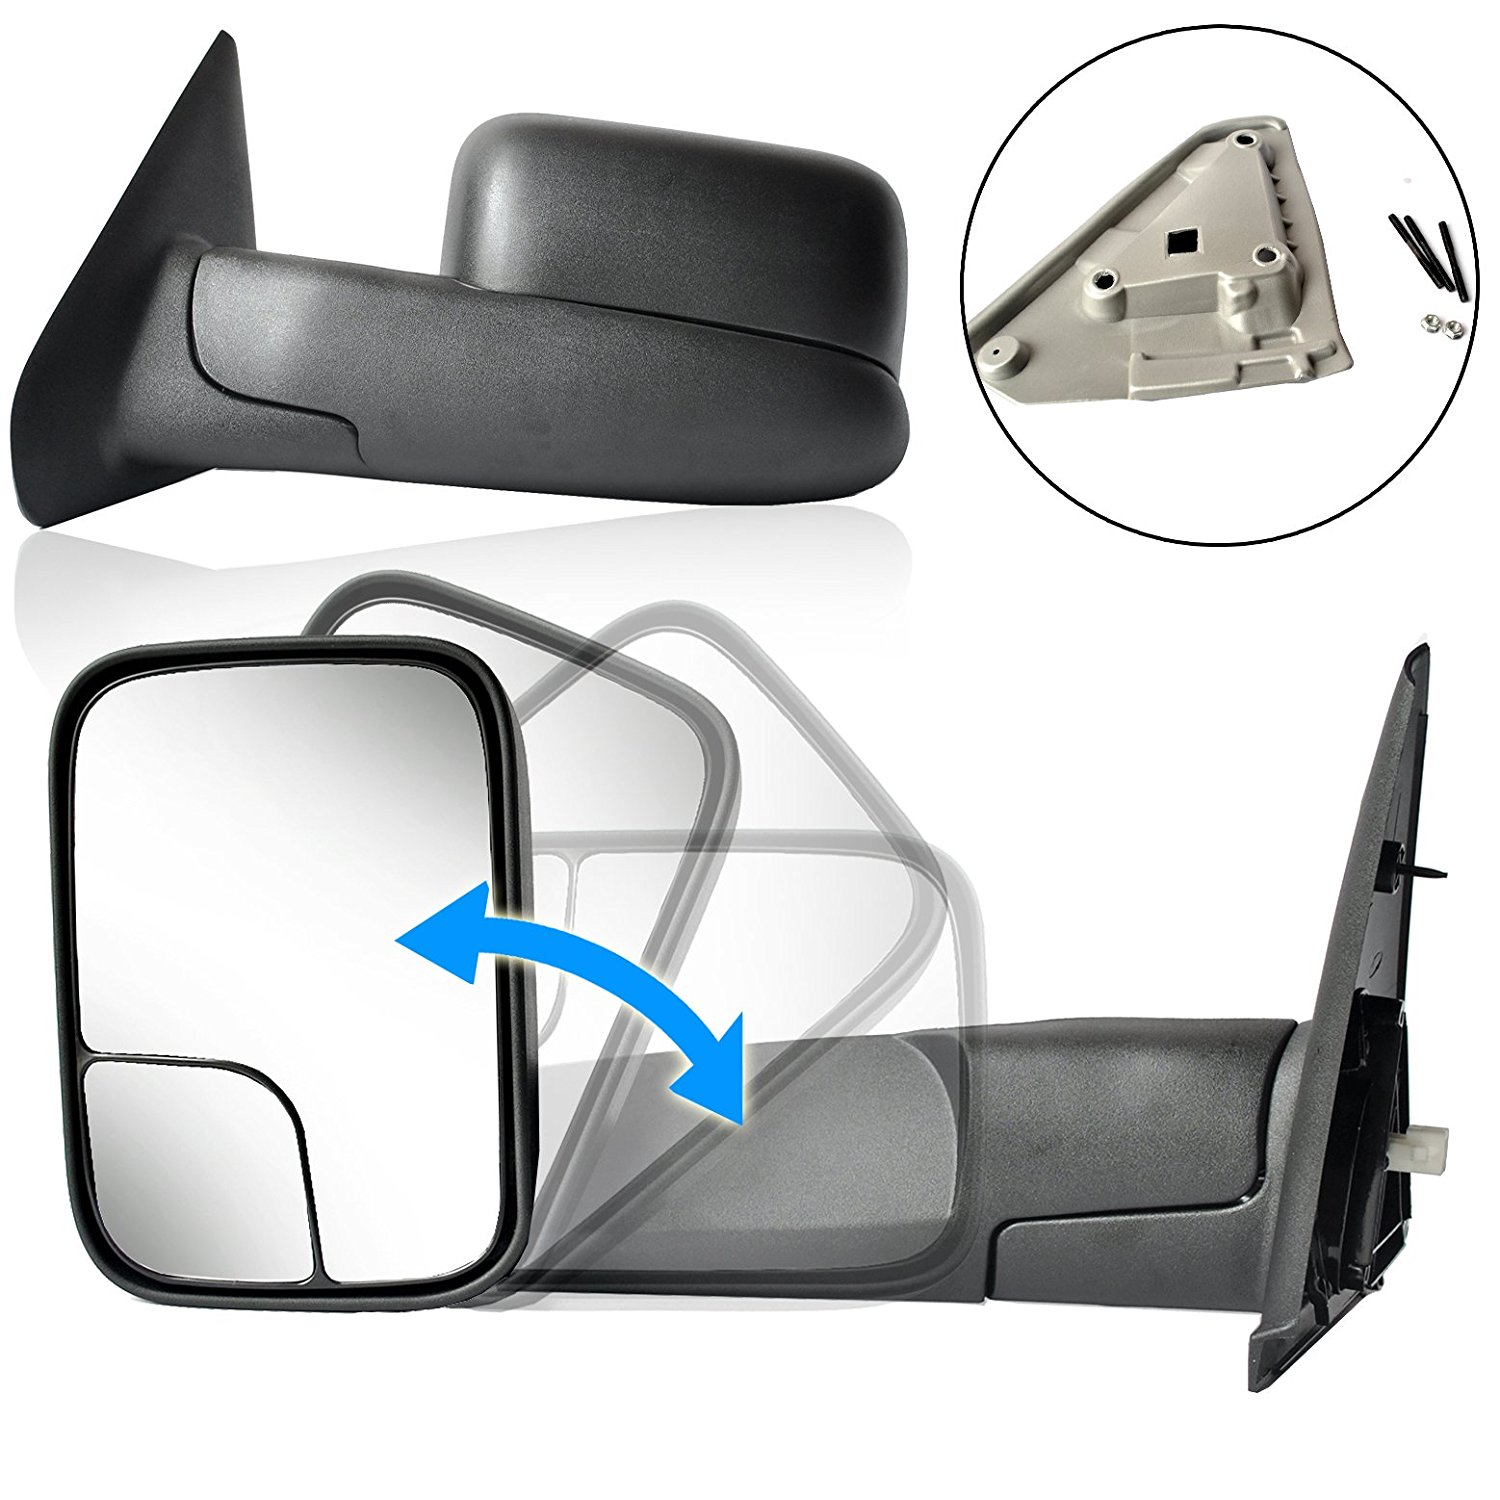 ECCPP Passenger and Driver Side Towing Mirrors for 02-08 Dodge Ram 1500 03-09 Dodge Ram 2500 3500 Pickup Truck Power Heated Tow Folding Side View Black Mirror Pair Set